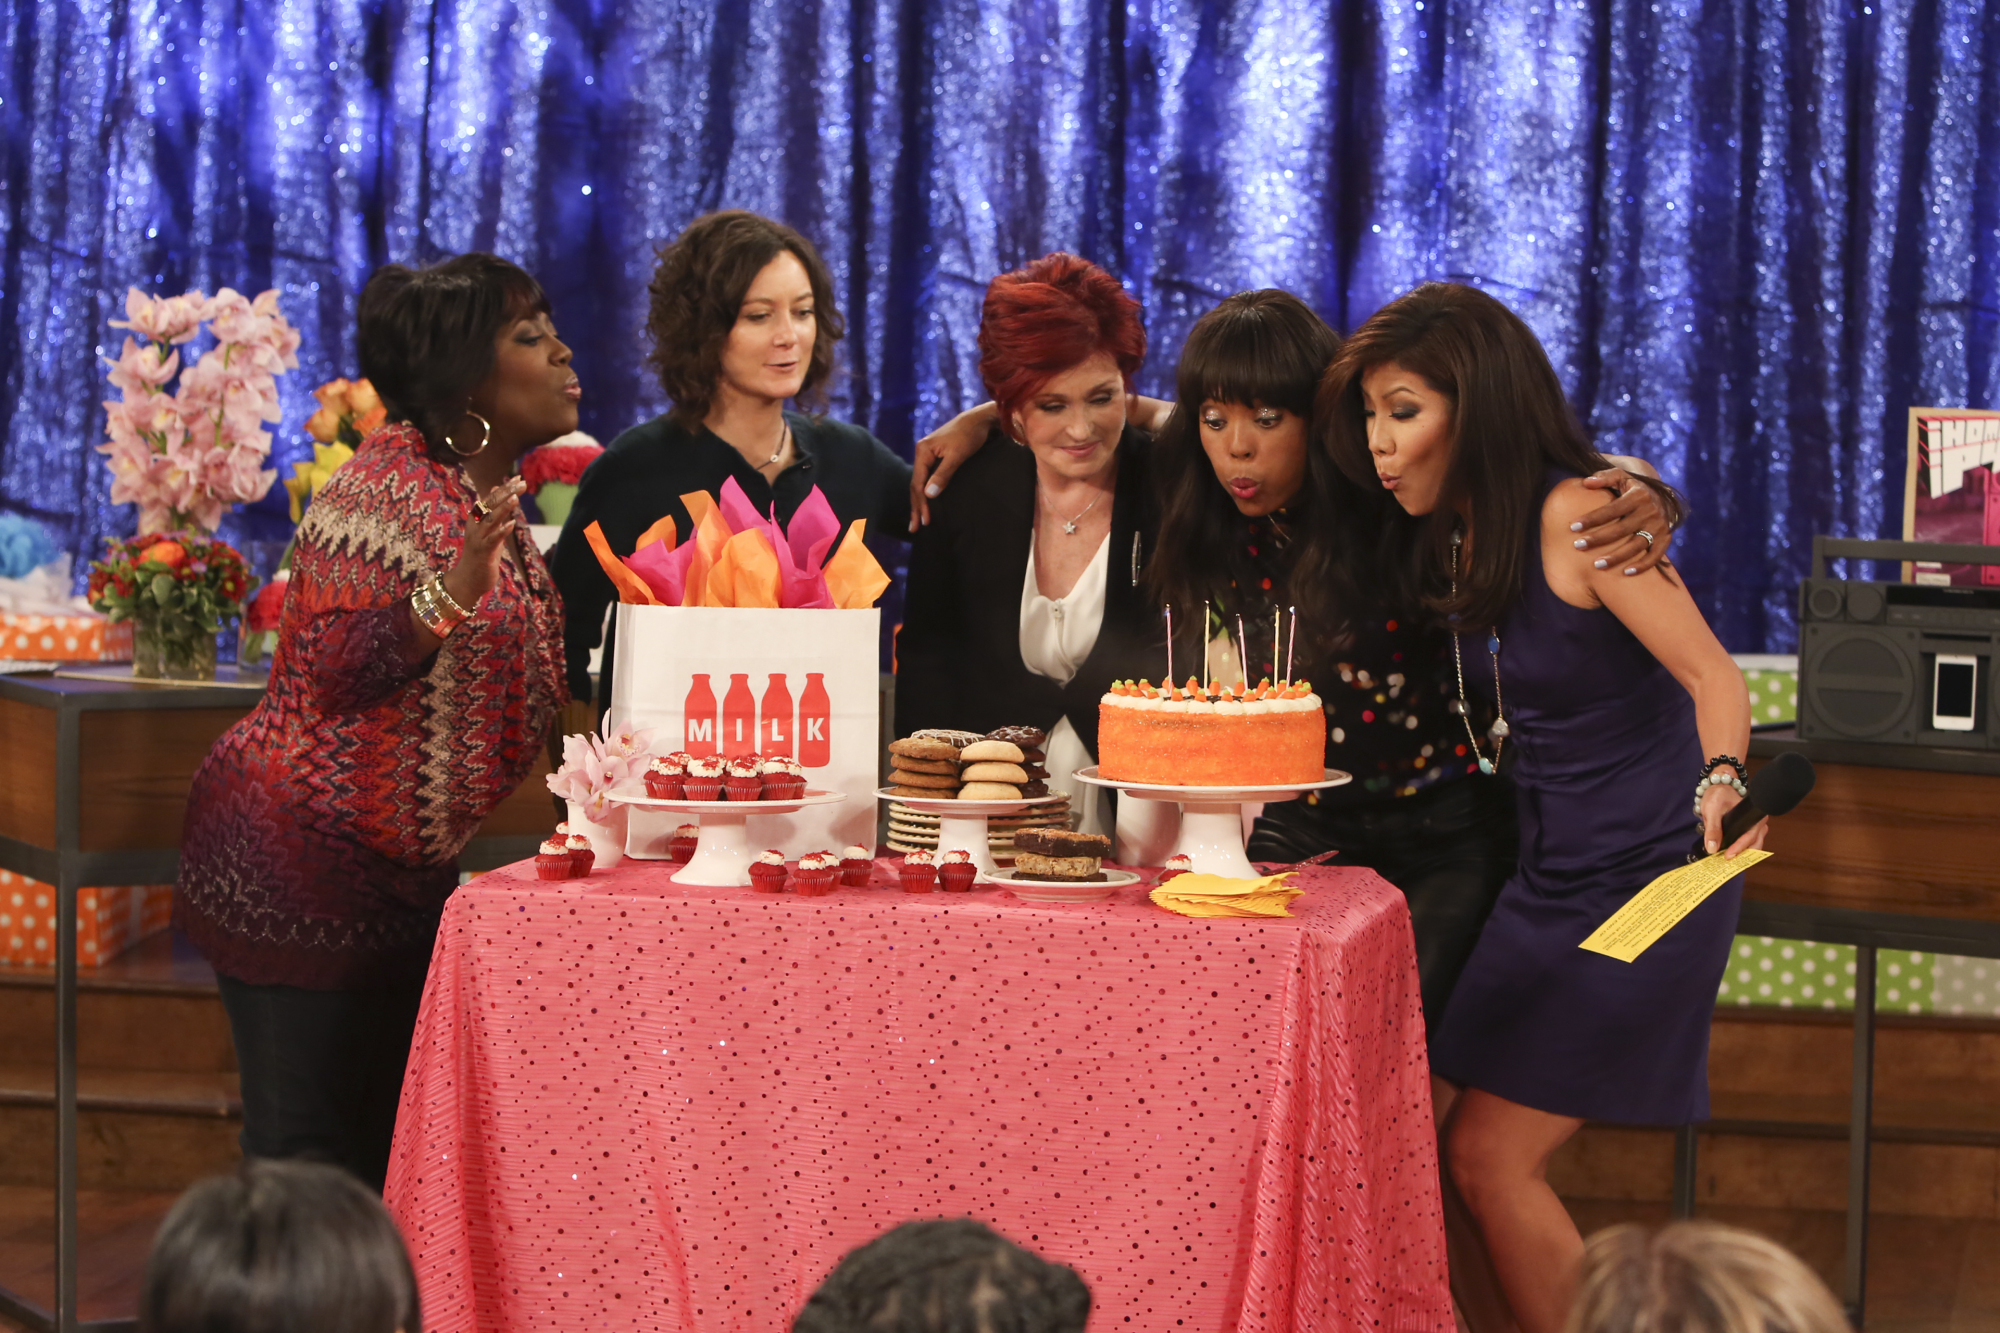 The Ladies Celebrate Aisha's Birthday.